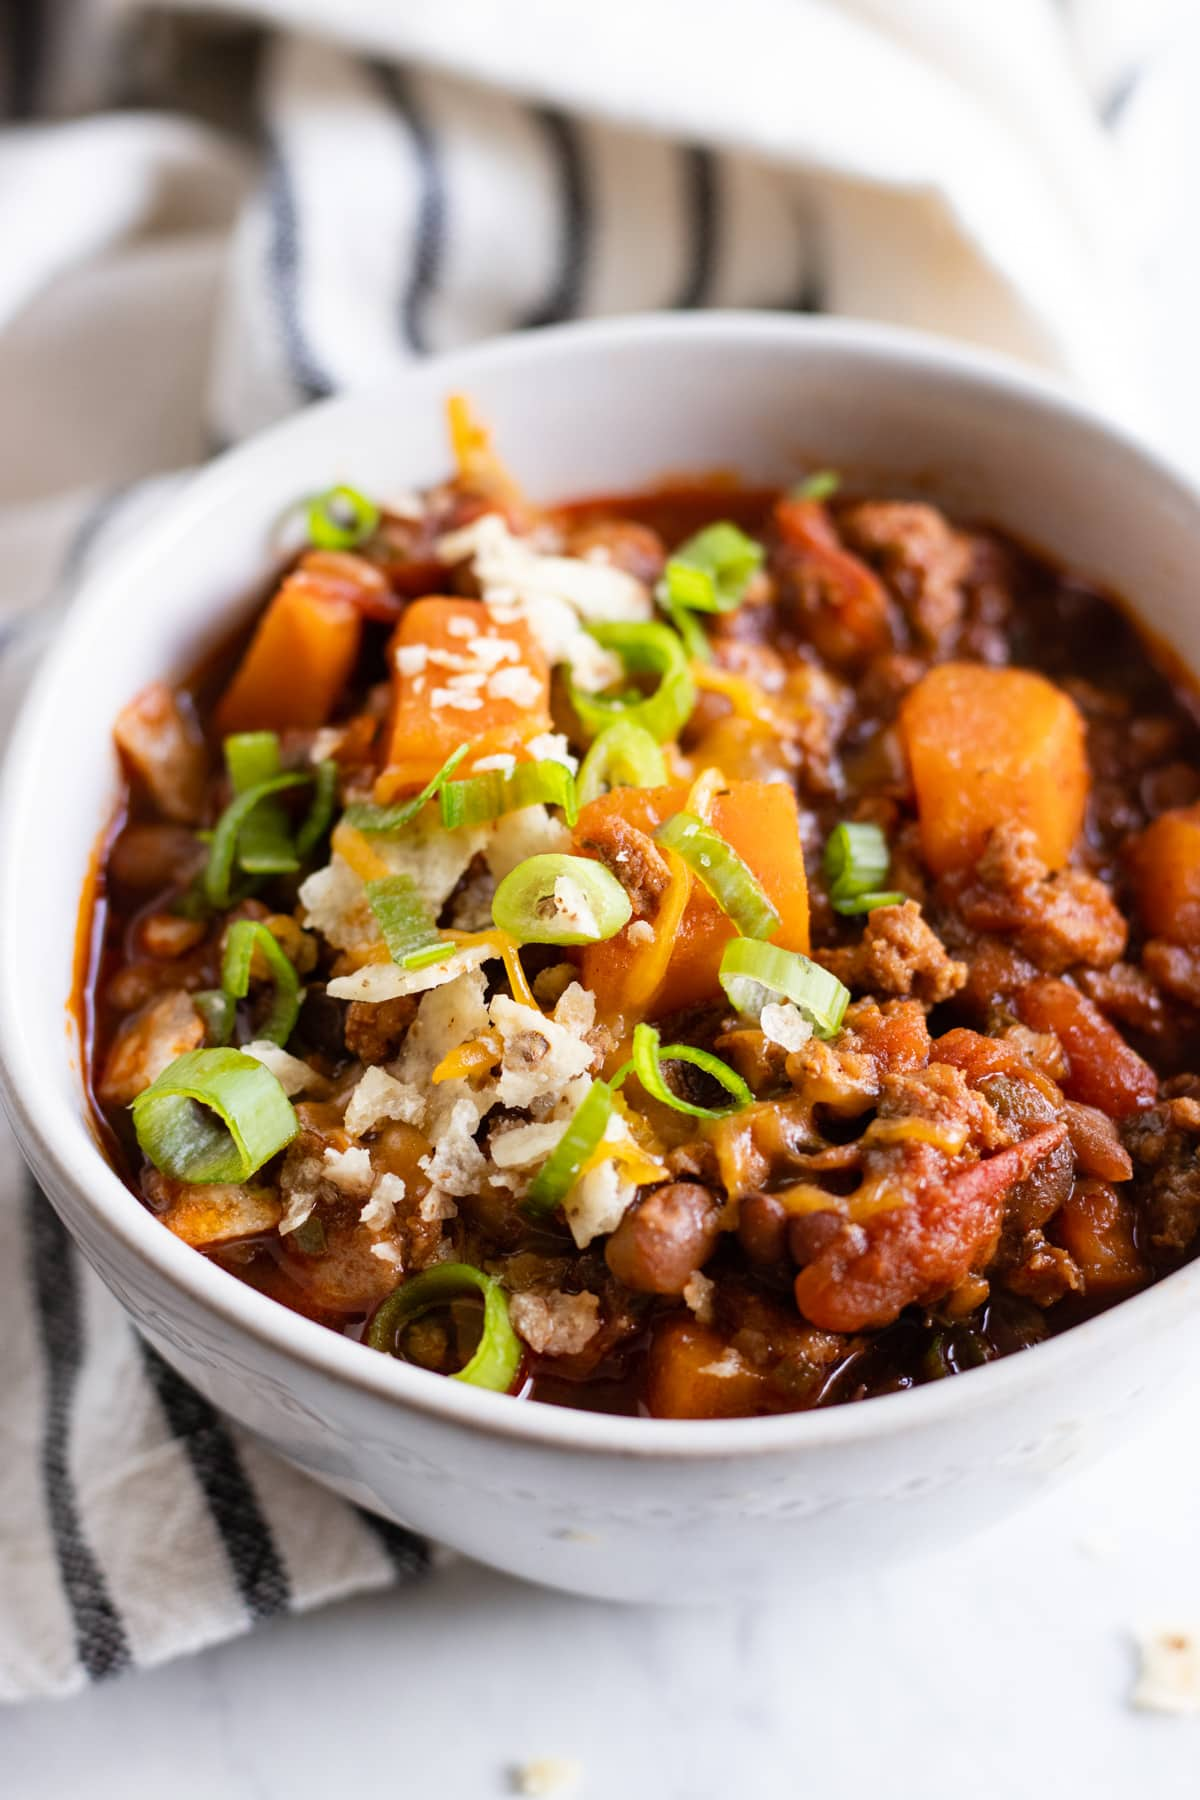 A bowl of chili made with ground turkey, sweet potatoes, and canned lentils and topped with crushed corn tortilla chips and sliced green onion tops.